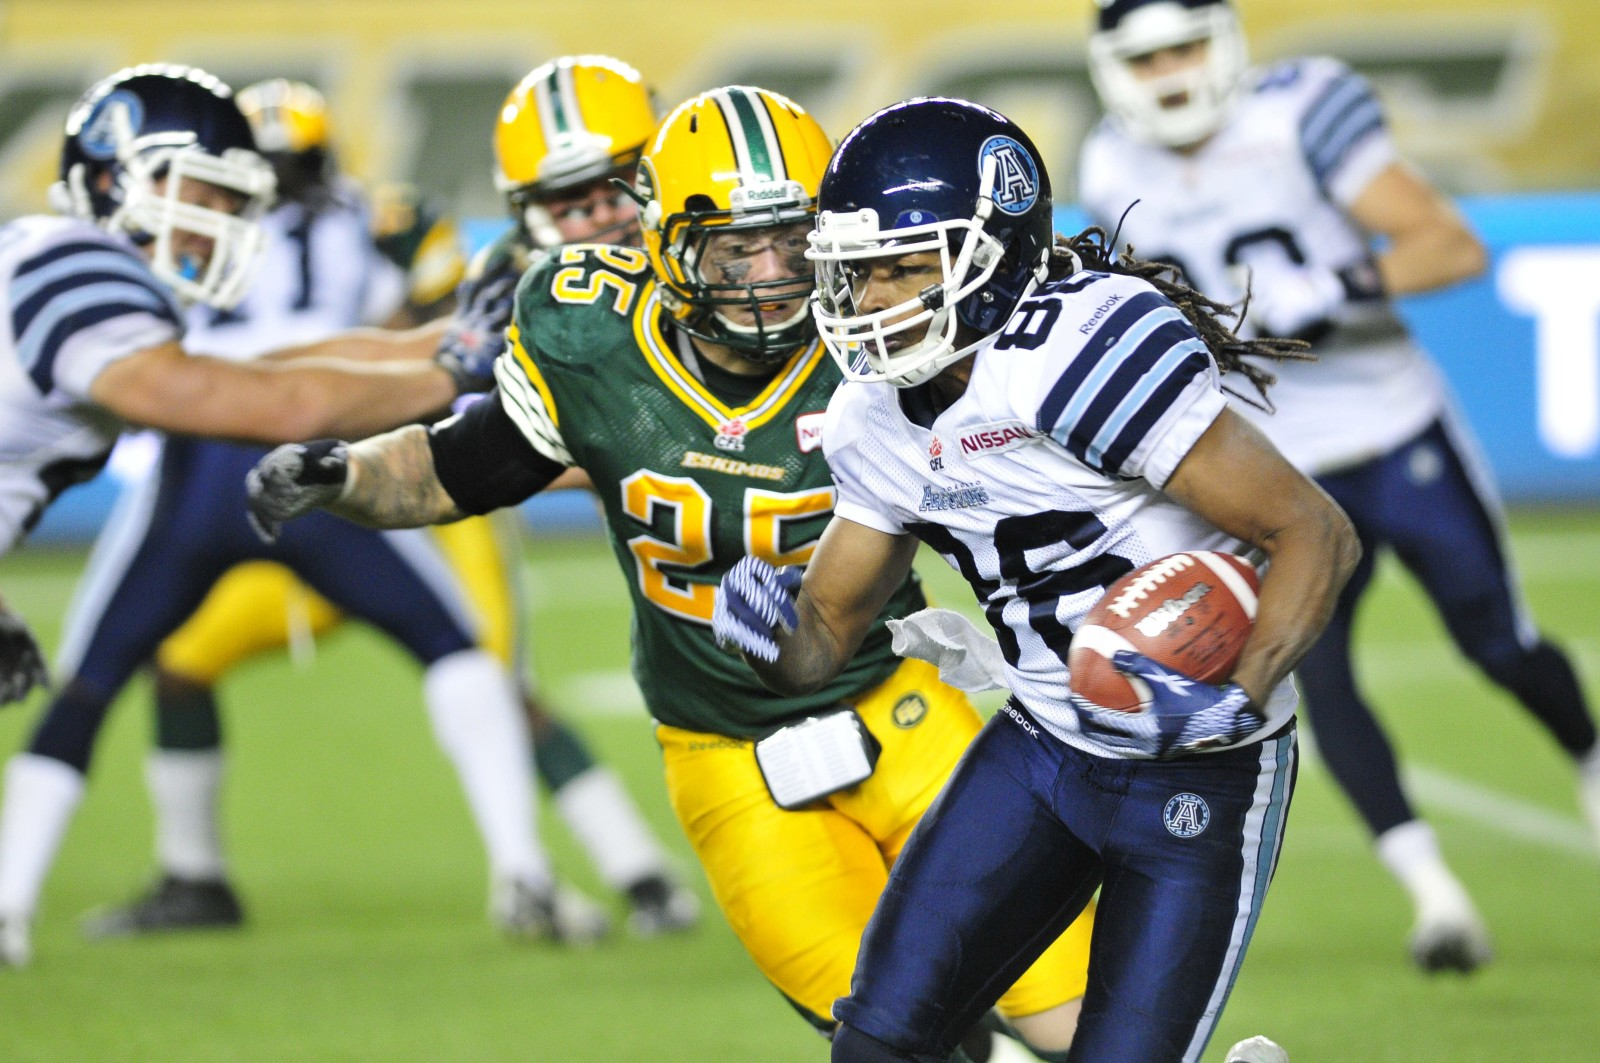 left to right - Edmonton Eskimos player #25 (S ) Mike Miller tries to go after Toronto Argonauts player # 86 ( WR)Trent Guy during the 4th quarter of CFL game action between the Edmonton Eskimo's and the Toronto Argonauts at Commonwealth stadium in Edmonton Saturday, September 28/2013 (CFL PHOTO - Walter Tychnowicz)